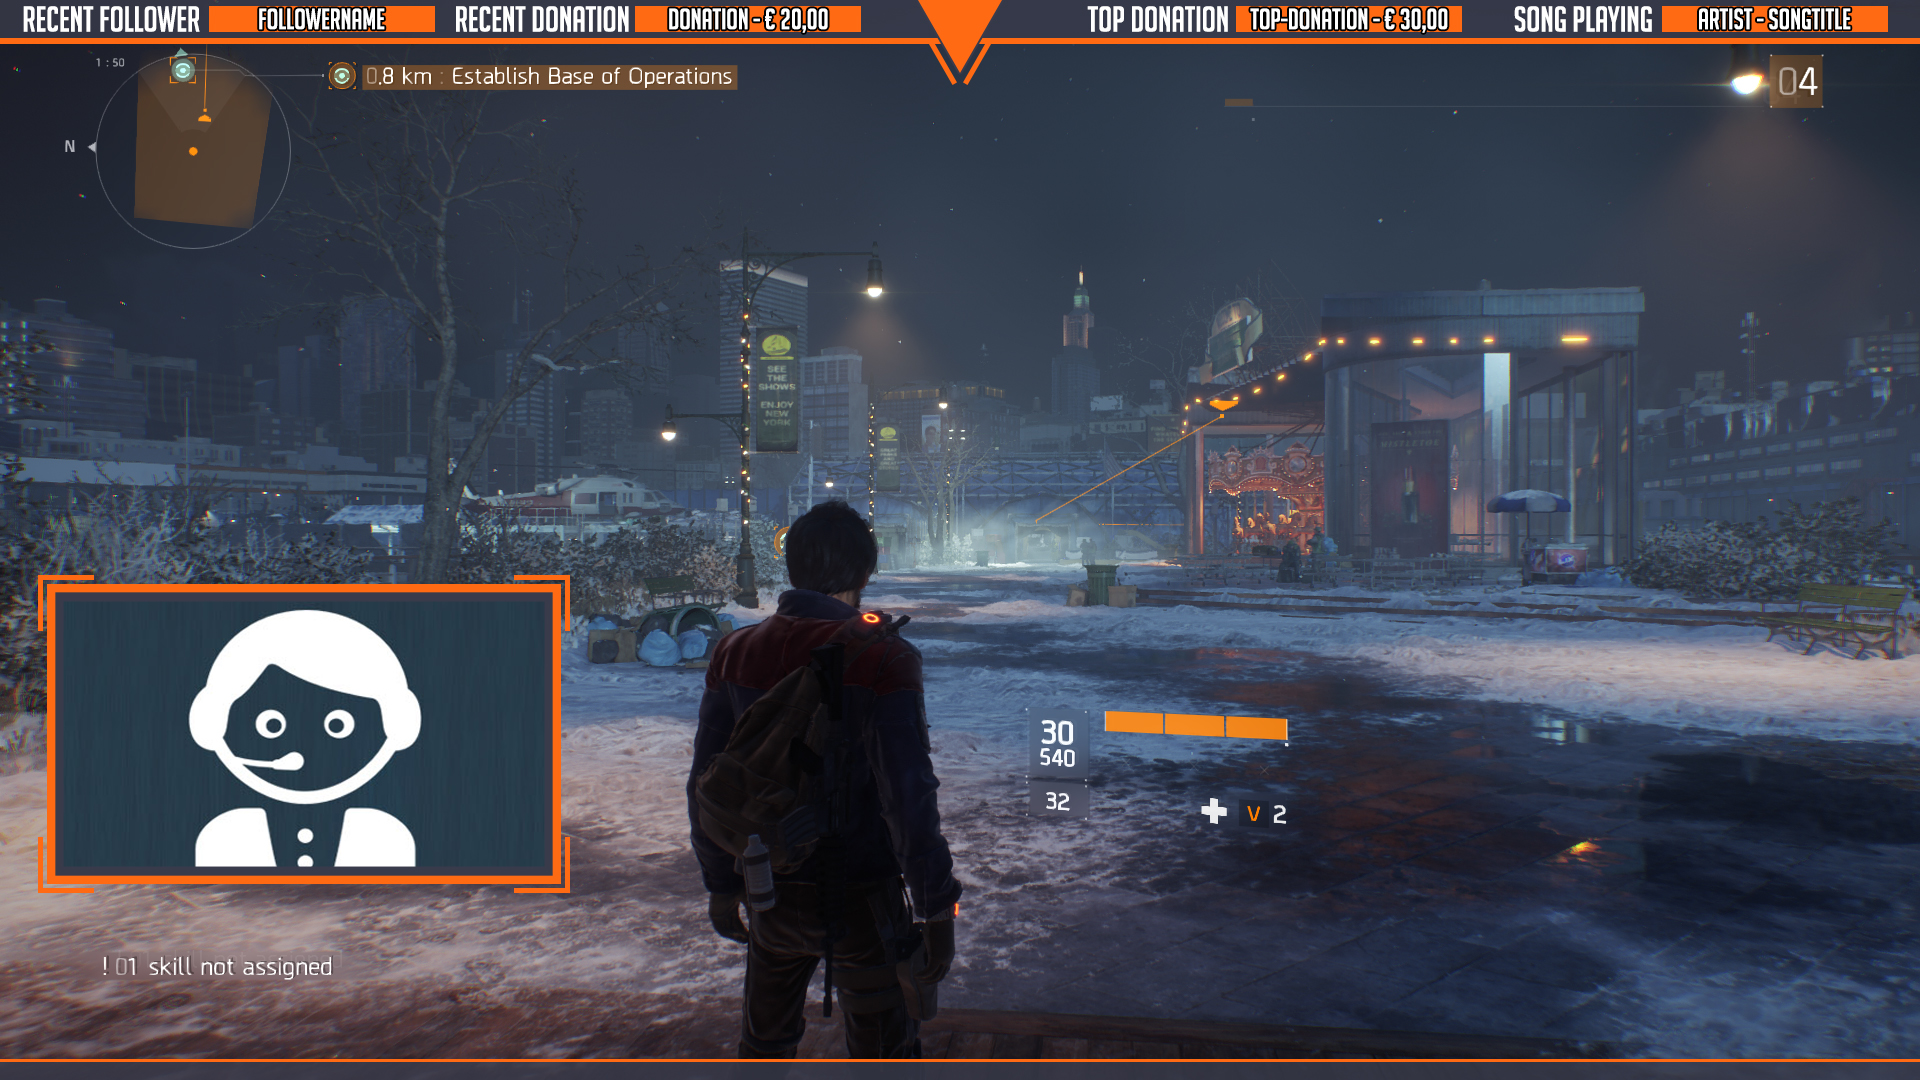 Stream Overlays for free! Design your Channel for free